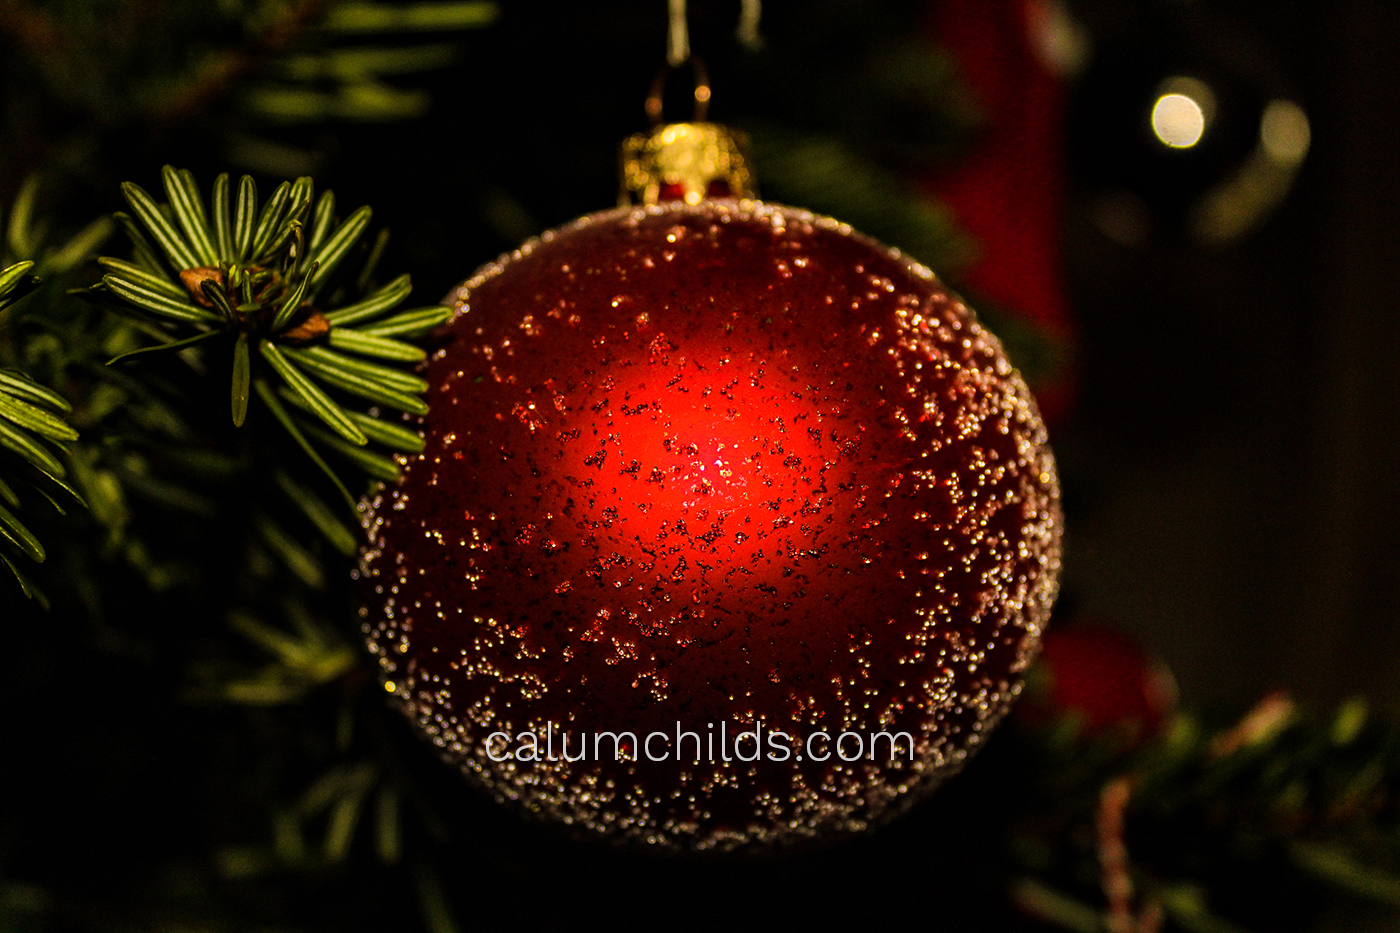 A red bauble hangs on a tree.